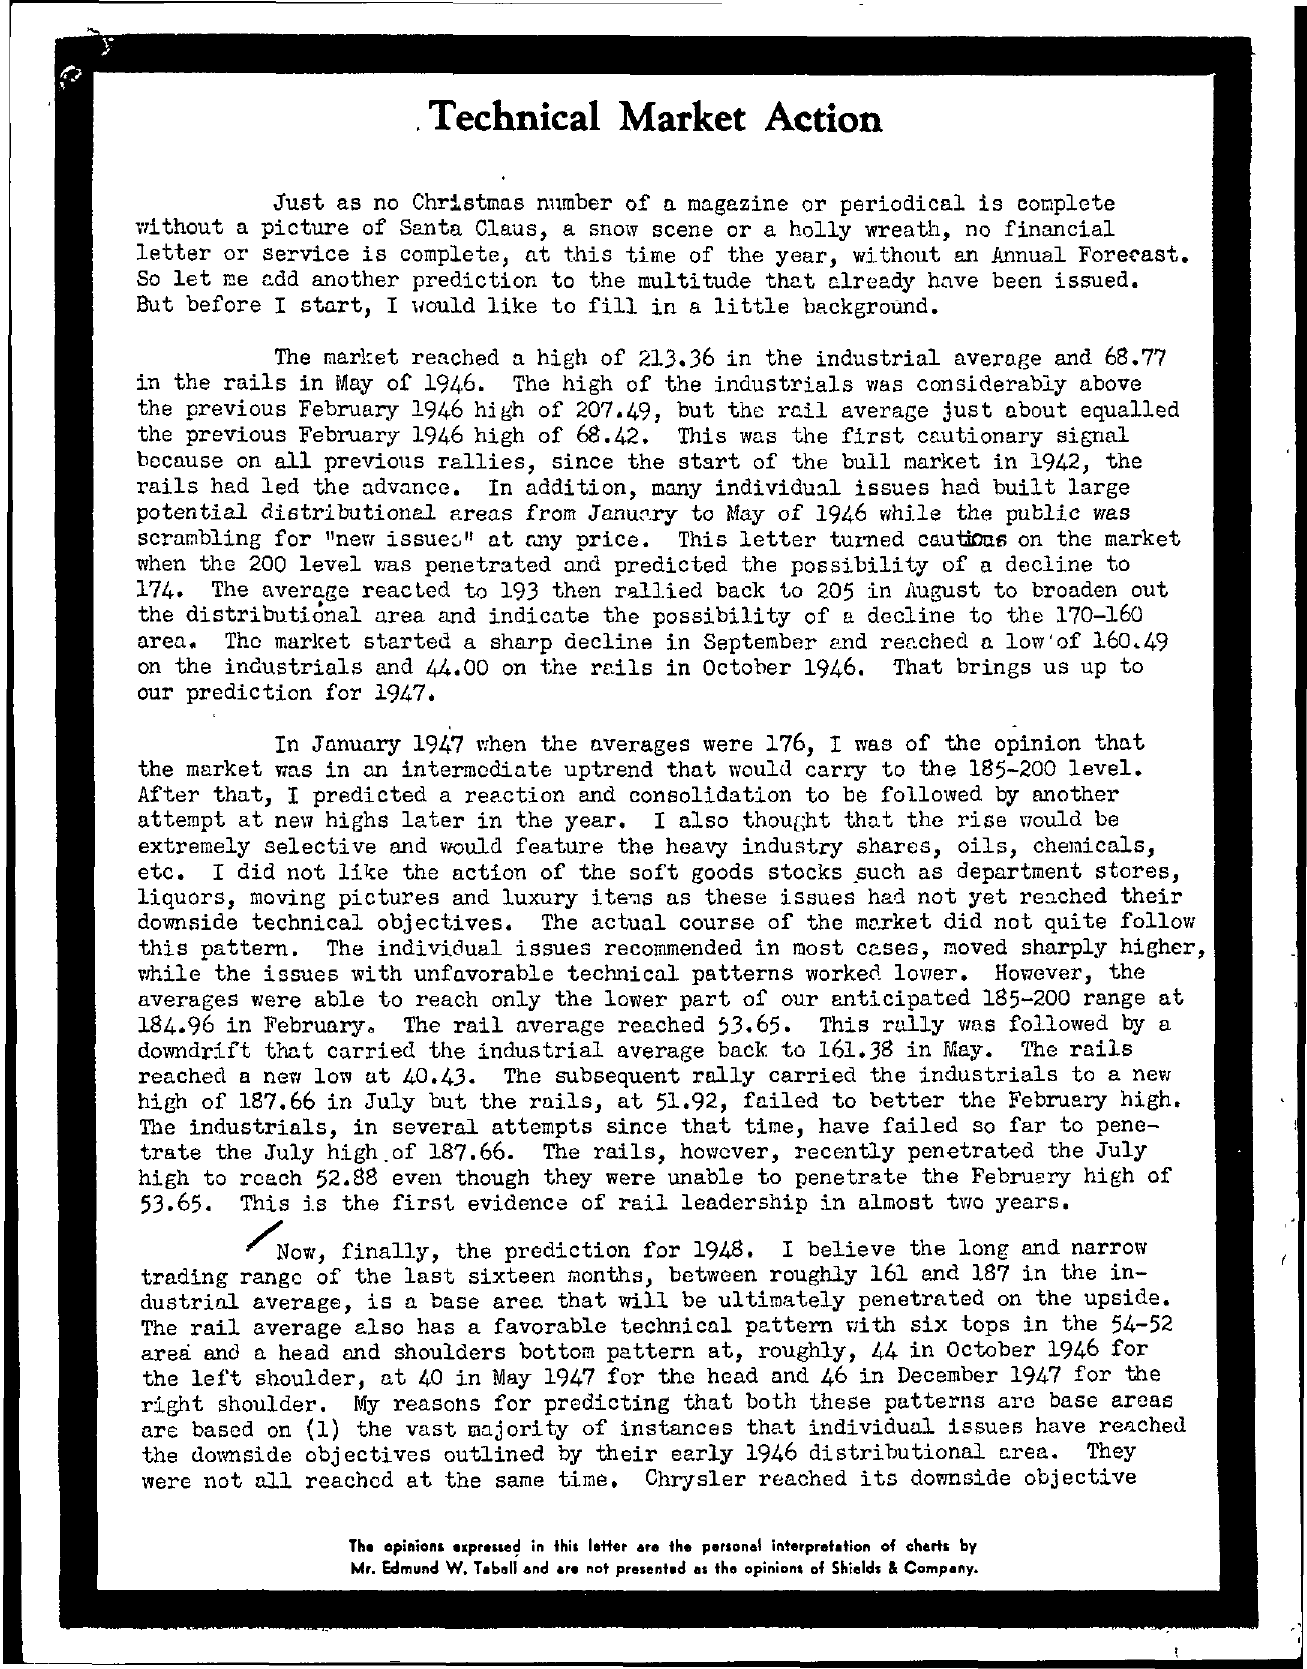 Tabell's Market Letter - December 31, 1947 page 1